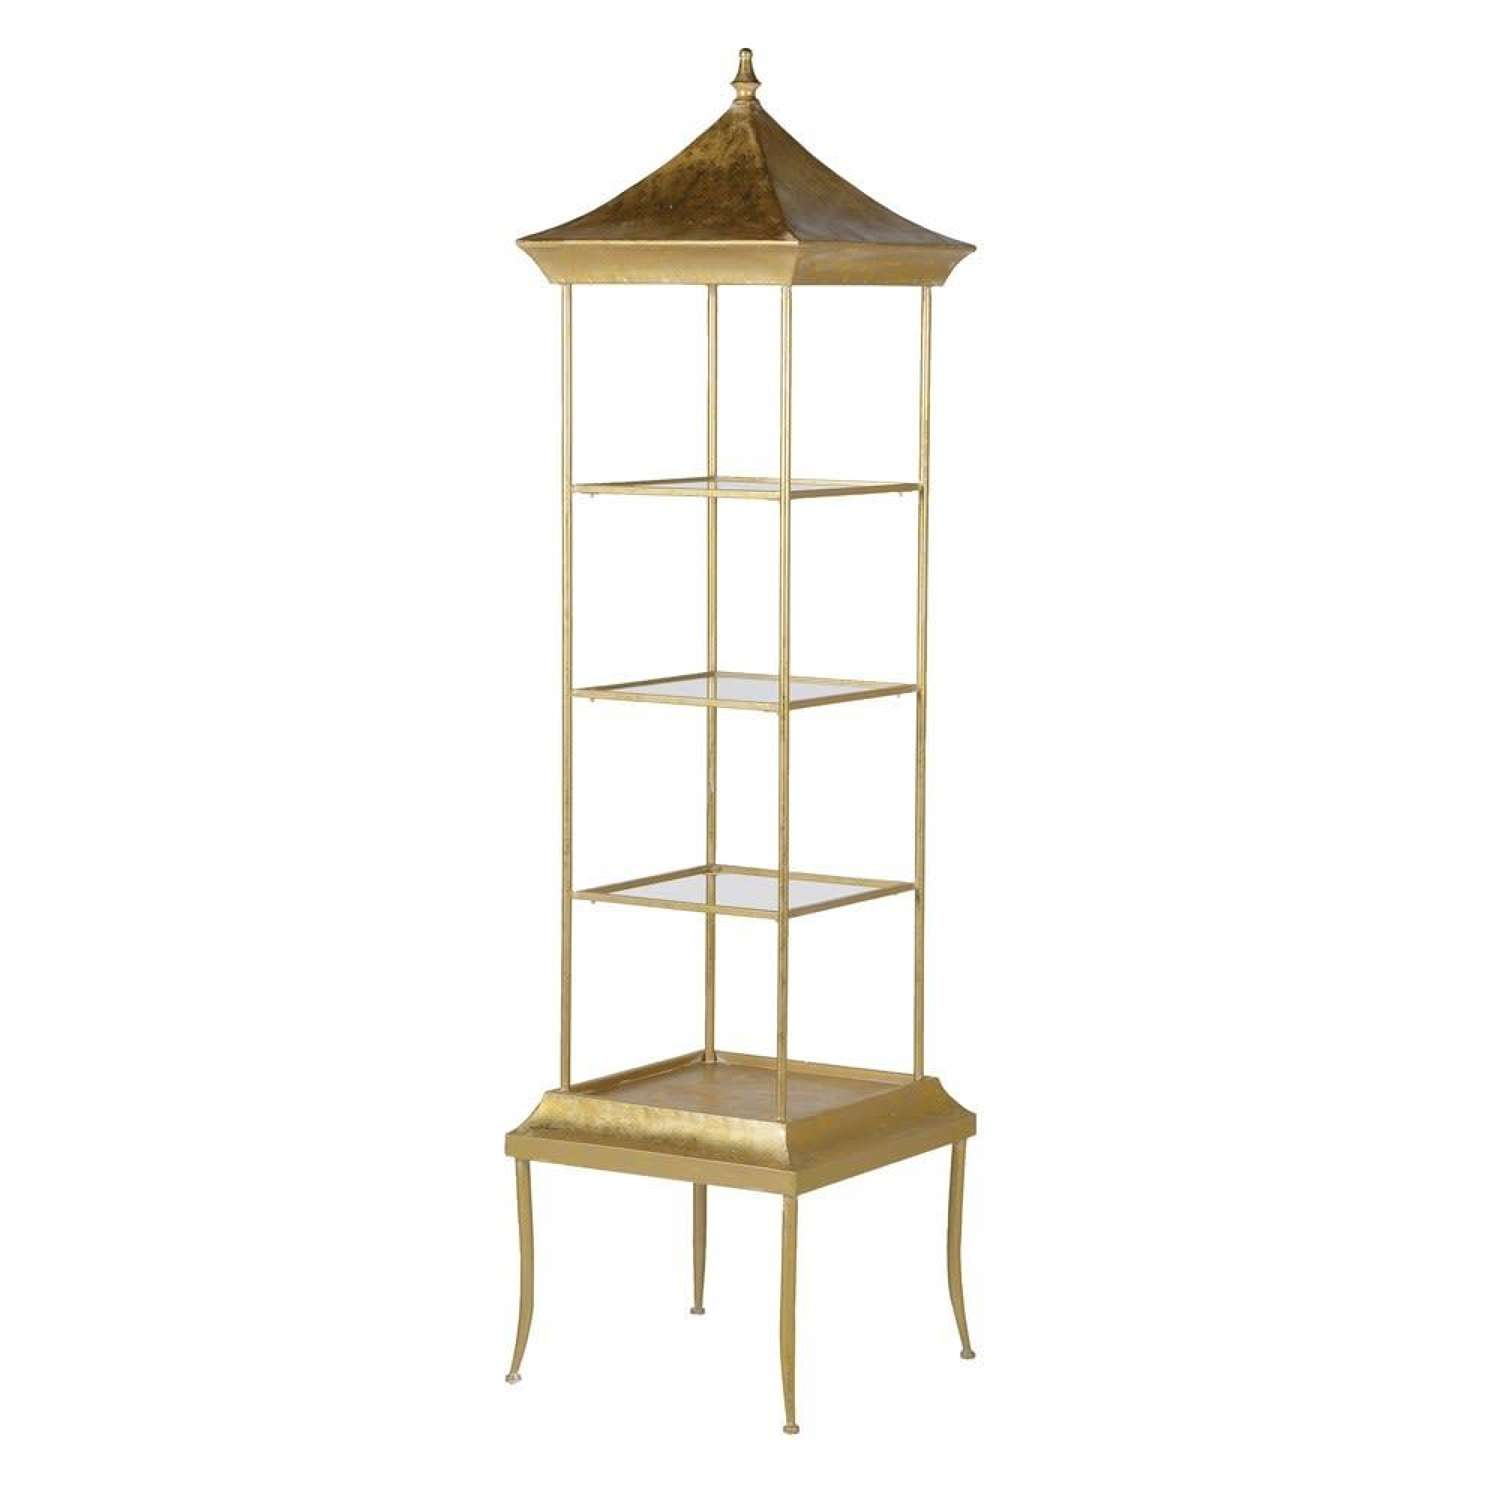 Gold Finished Pagoda Style Shelving Unit